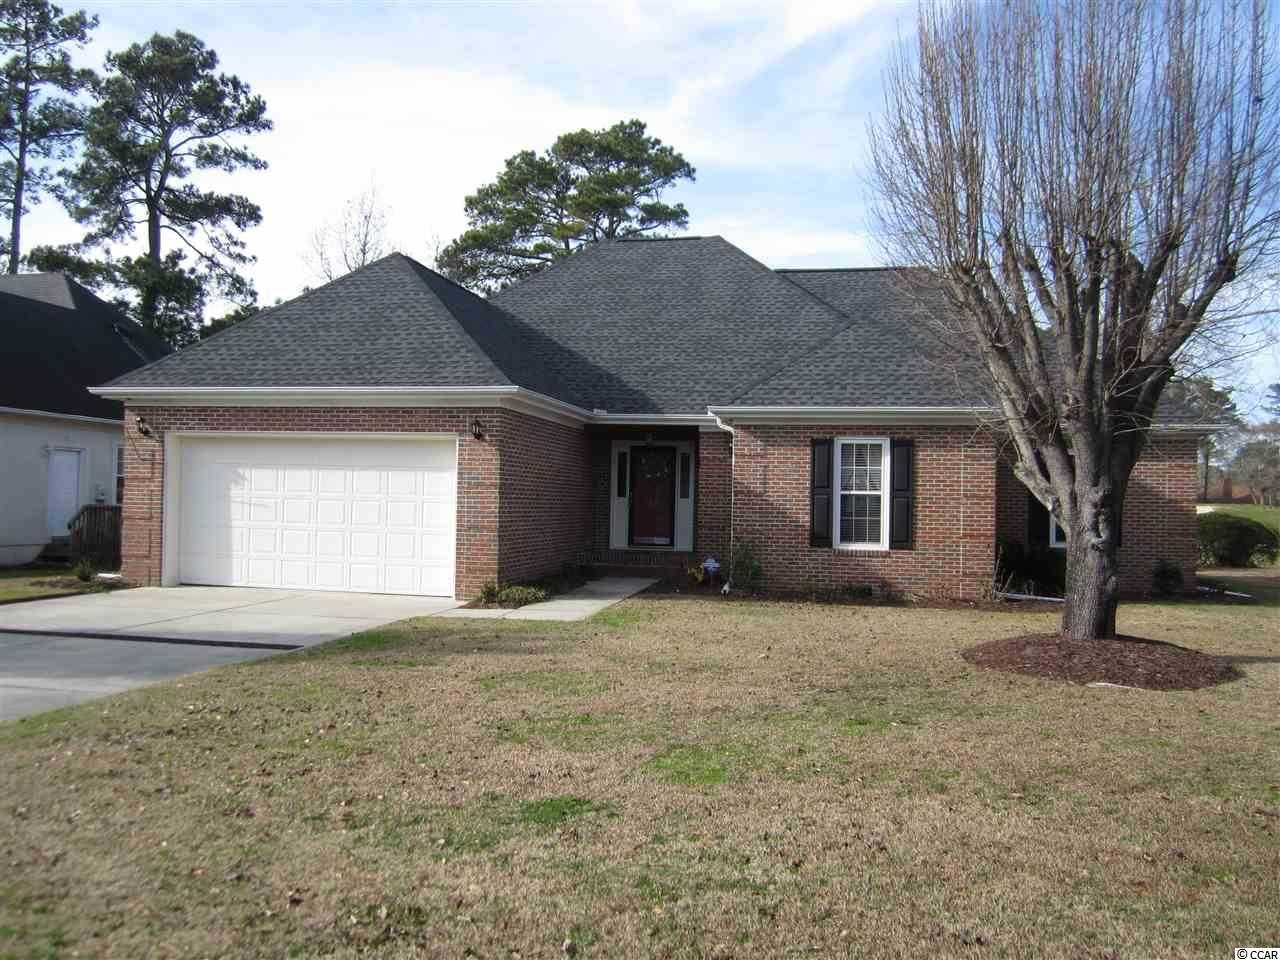 Listing a home in January can be a challenge unless it is in River Hills.  This is a golden opportunity to own an all brick home with beautiful views of the River Hills Golf course.  Golf memberships to River Hills can be purchased from inactive members or social memberships for the pool and clubhouse use are always available.  Many updates including a new roof, encapsulated crawl space, transferrable termite bond and new water heater.  Owner is offering a flooring allowance with acceptable offer, ask Listing Agent for details. Large deck for entertaining with a added screen porch.  Wood burning fireplace, 2 car garage with attic for additional storage, large kitchen with nice pantry and laundry room.  River Hills is a prestigious golf community and convenient to nice restaurants and only a short drive to the ocean.   Measurements are approximate, Buyer should verify.